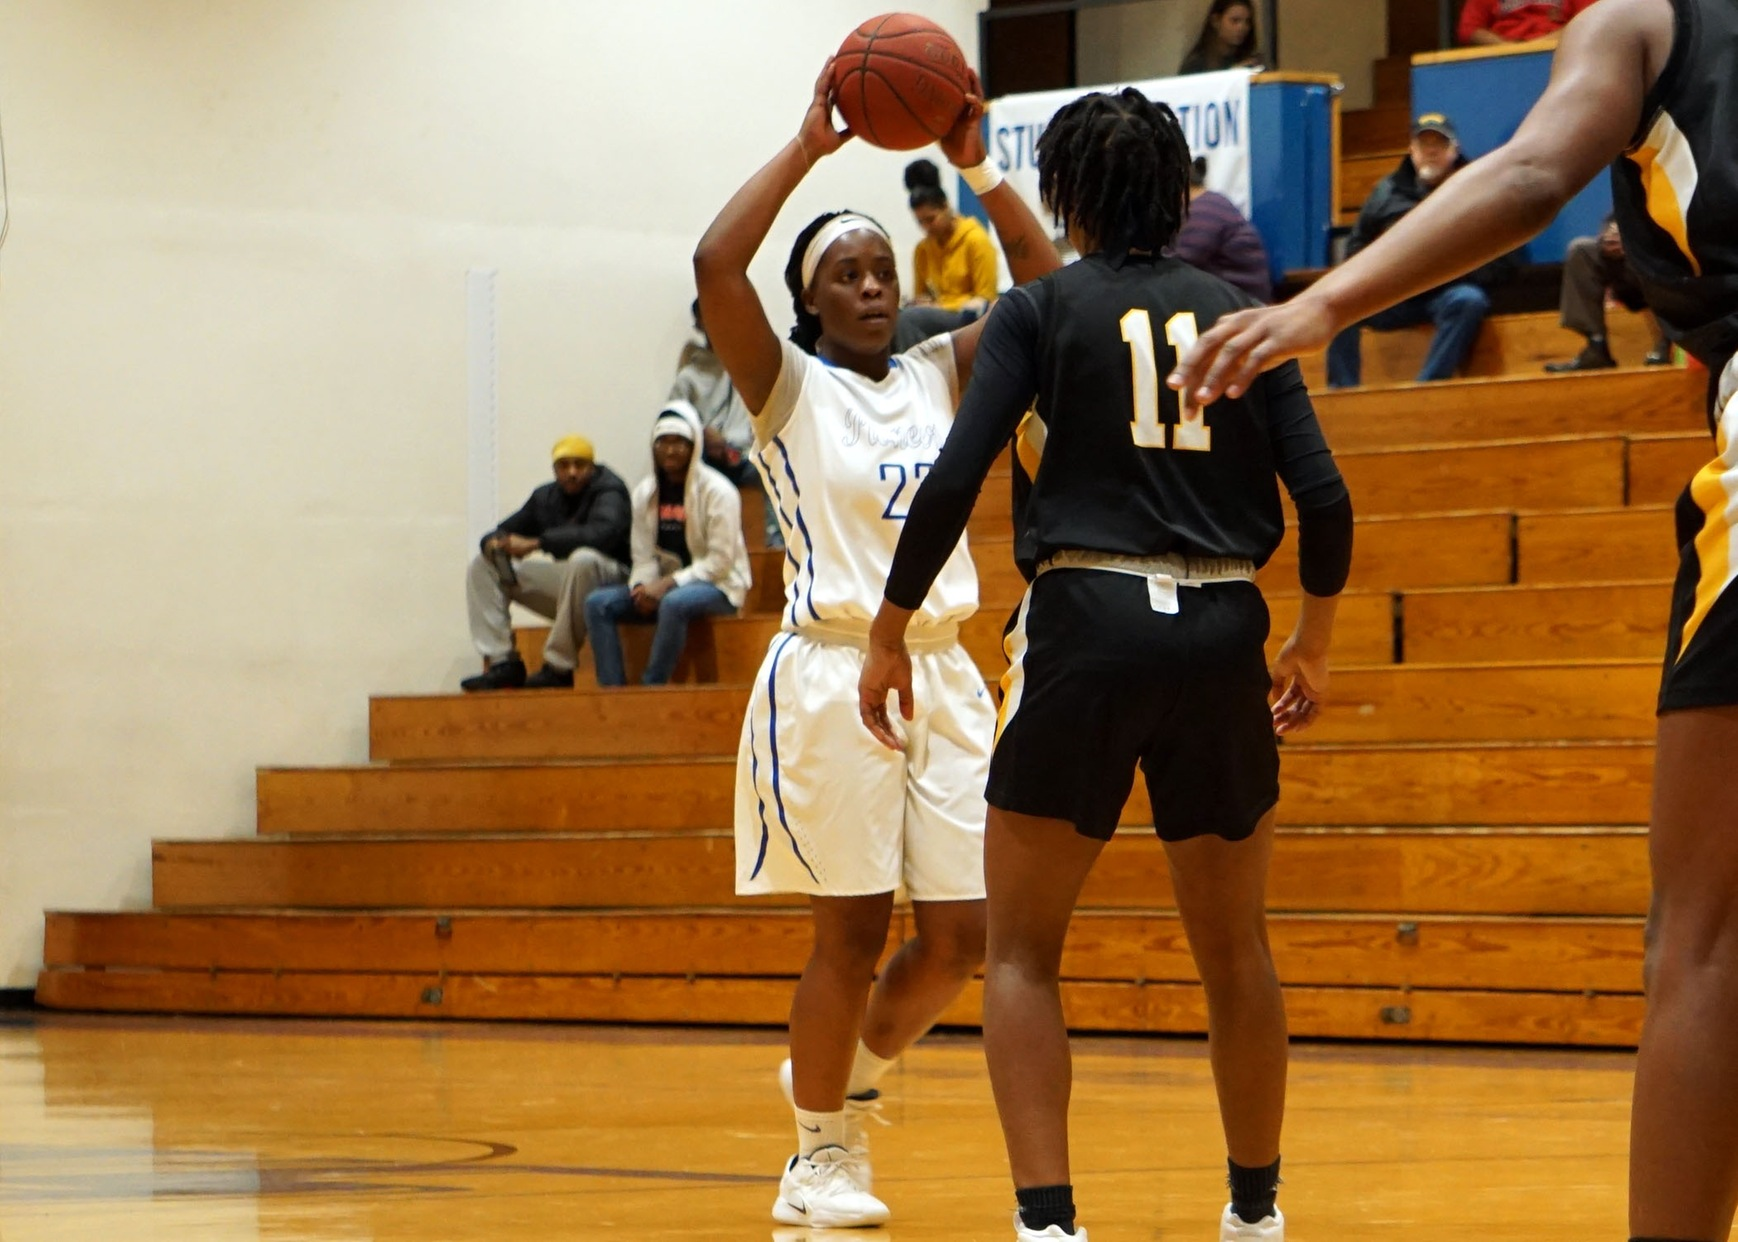 Lady Pioneers Lose to East Georgia